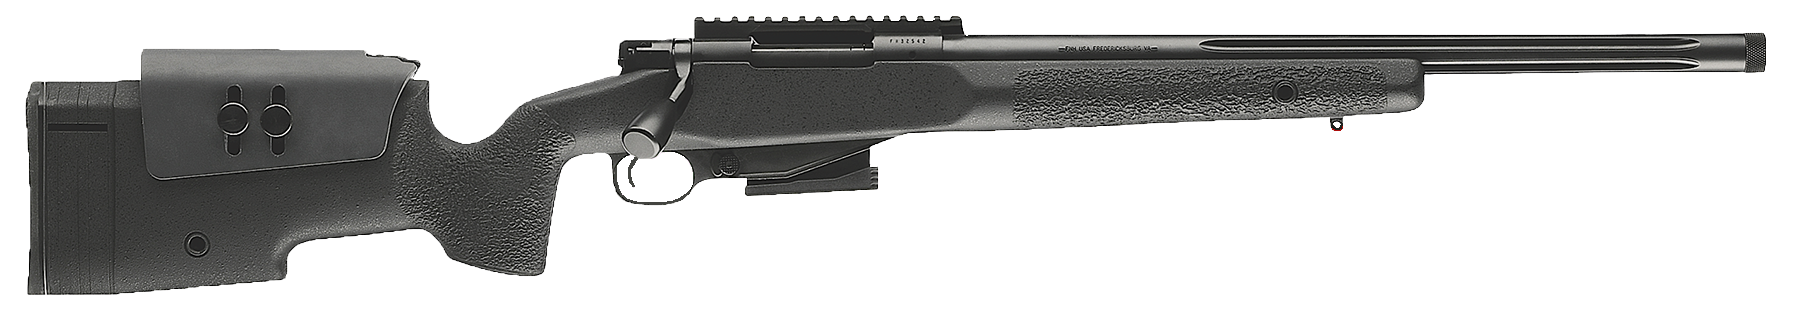 fn america spr a5m xp bolt action rifle .308 20%22 4 + 1 synthetic blk.png